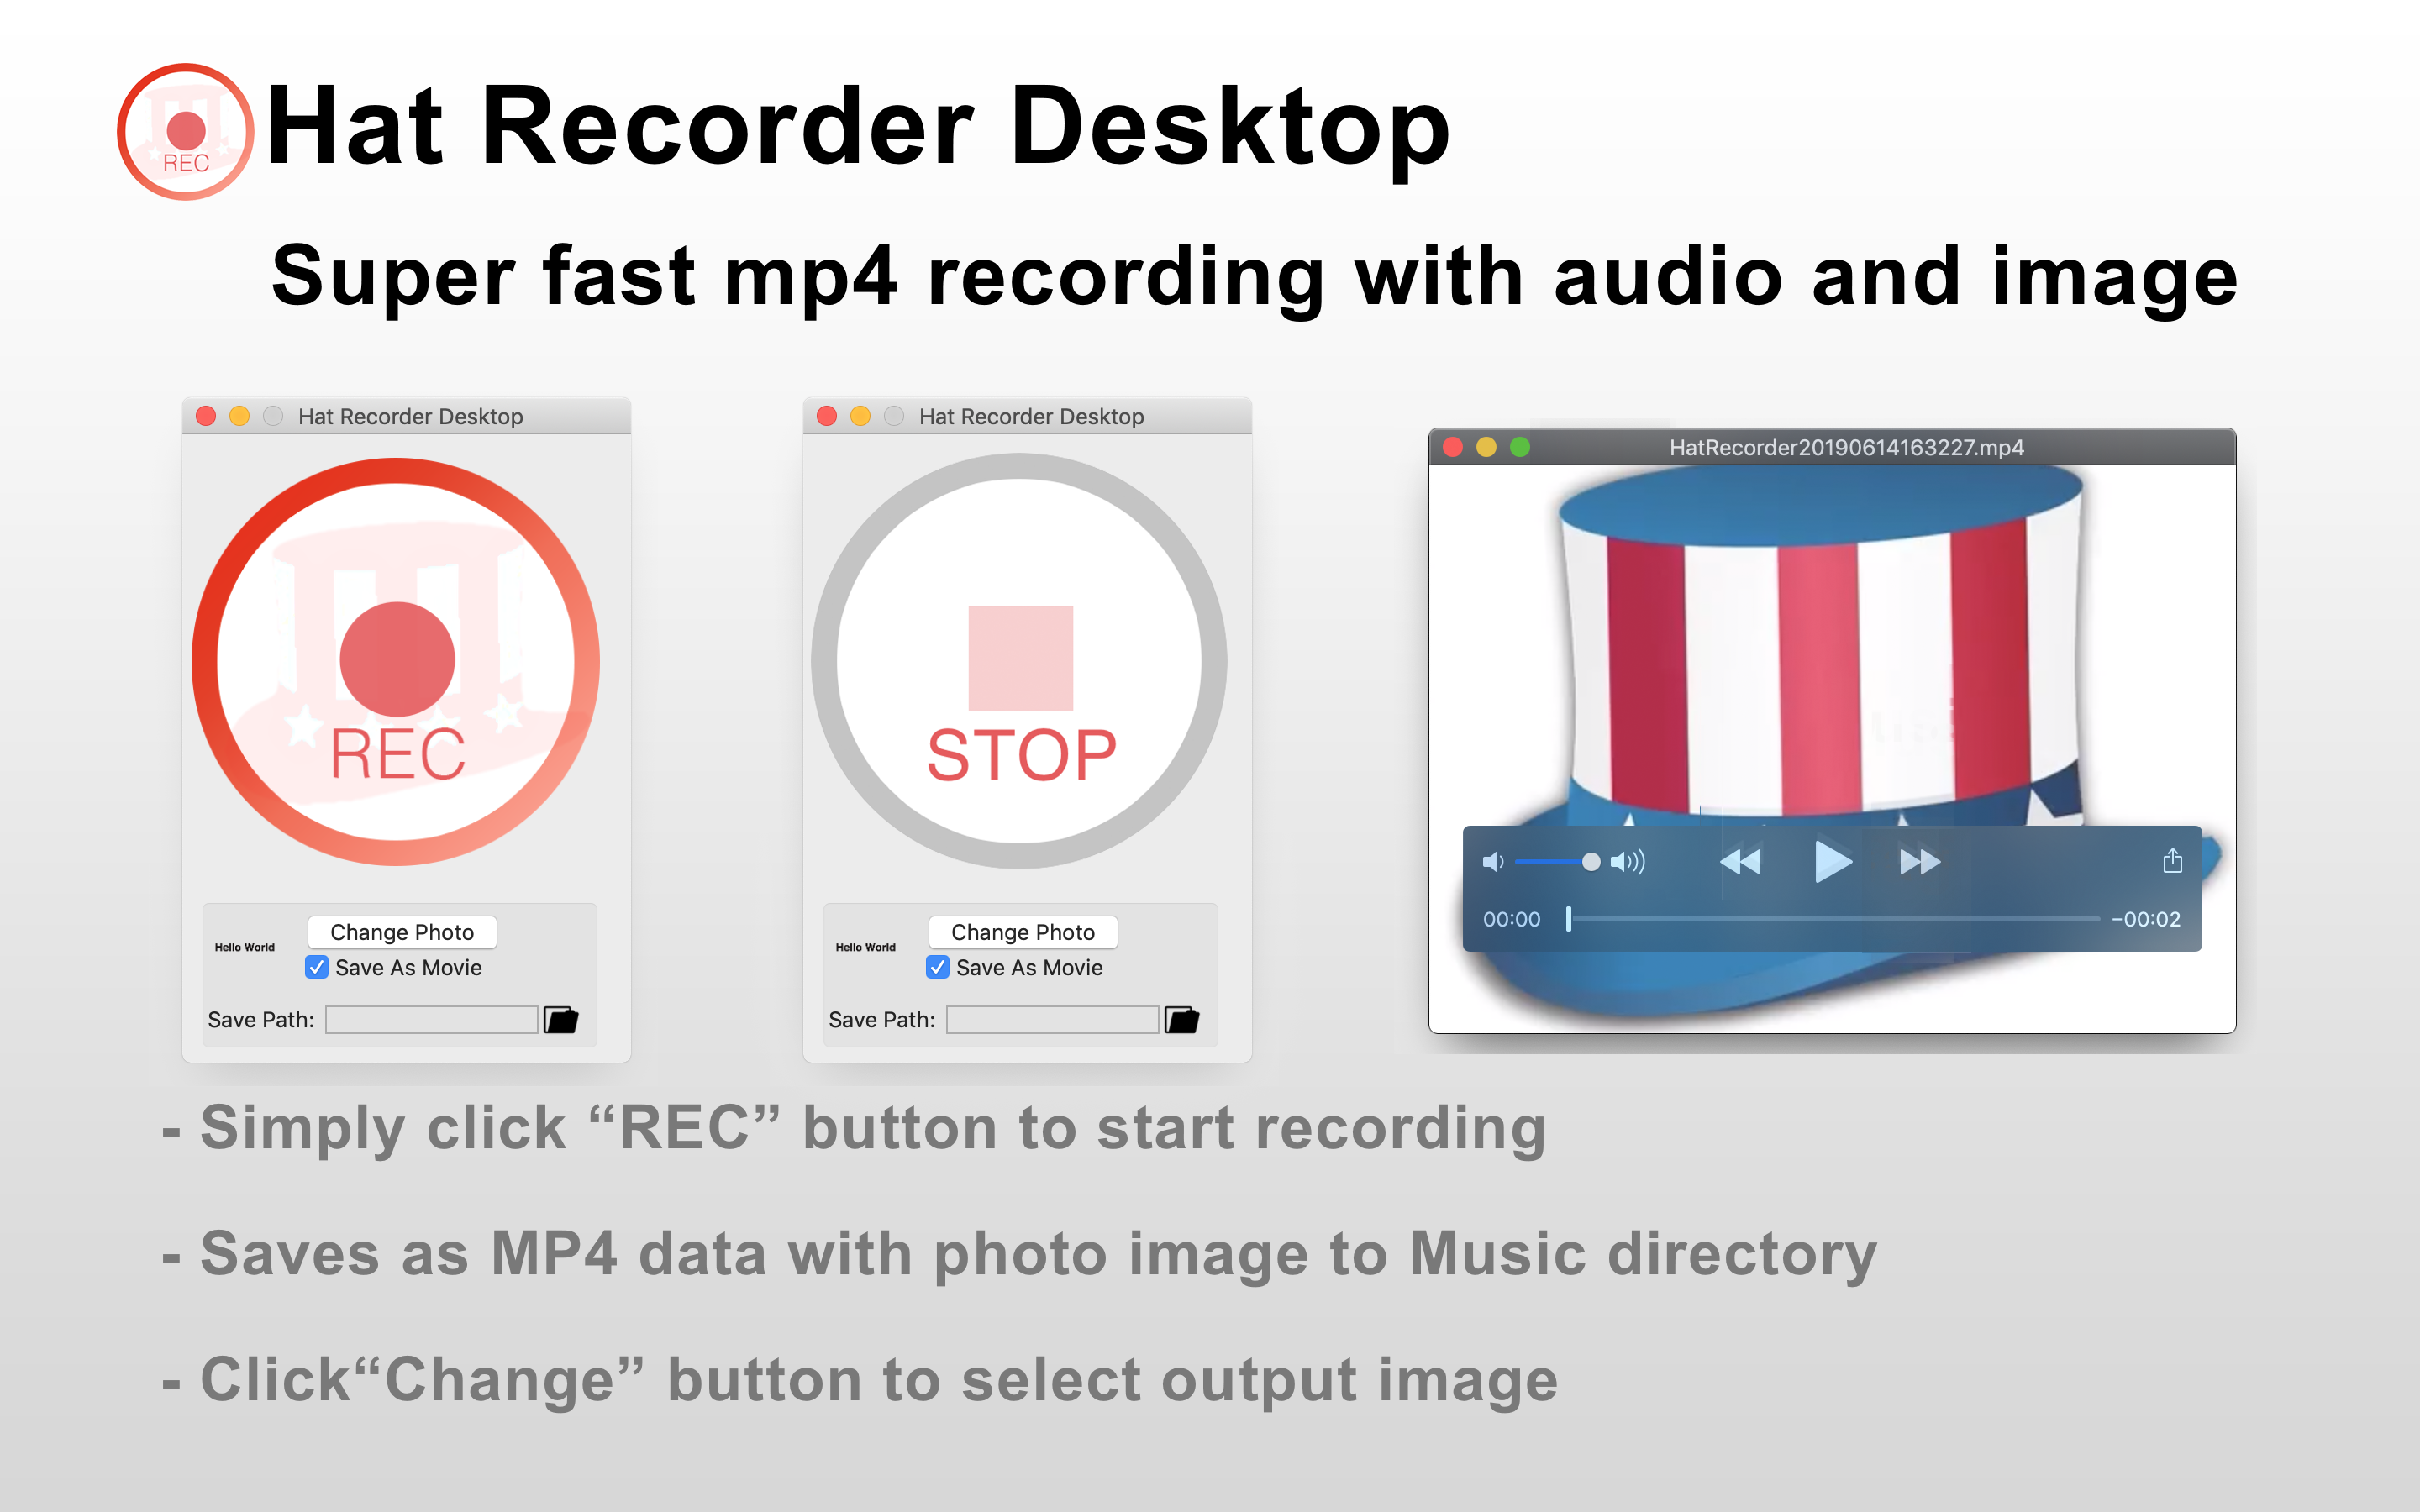 Hat Recorder Desktop